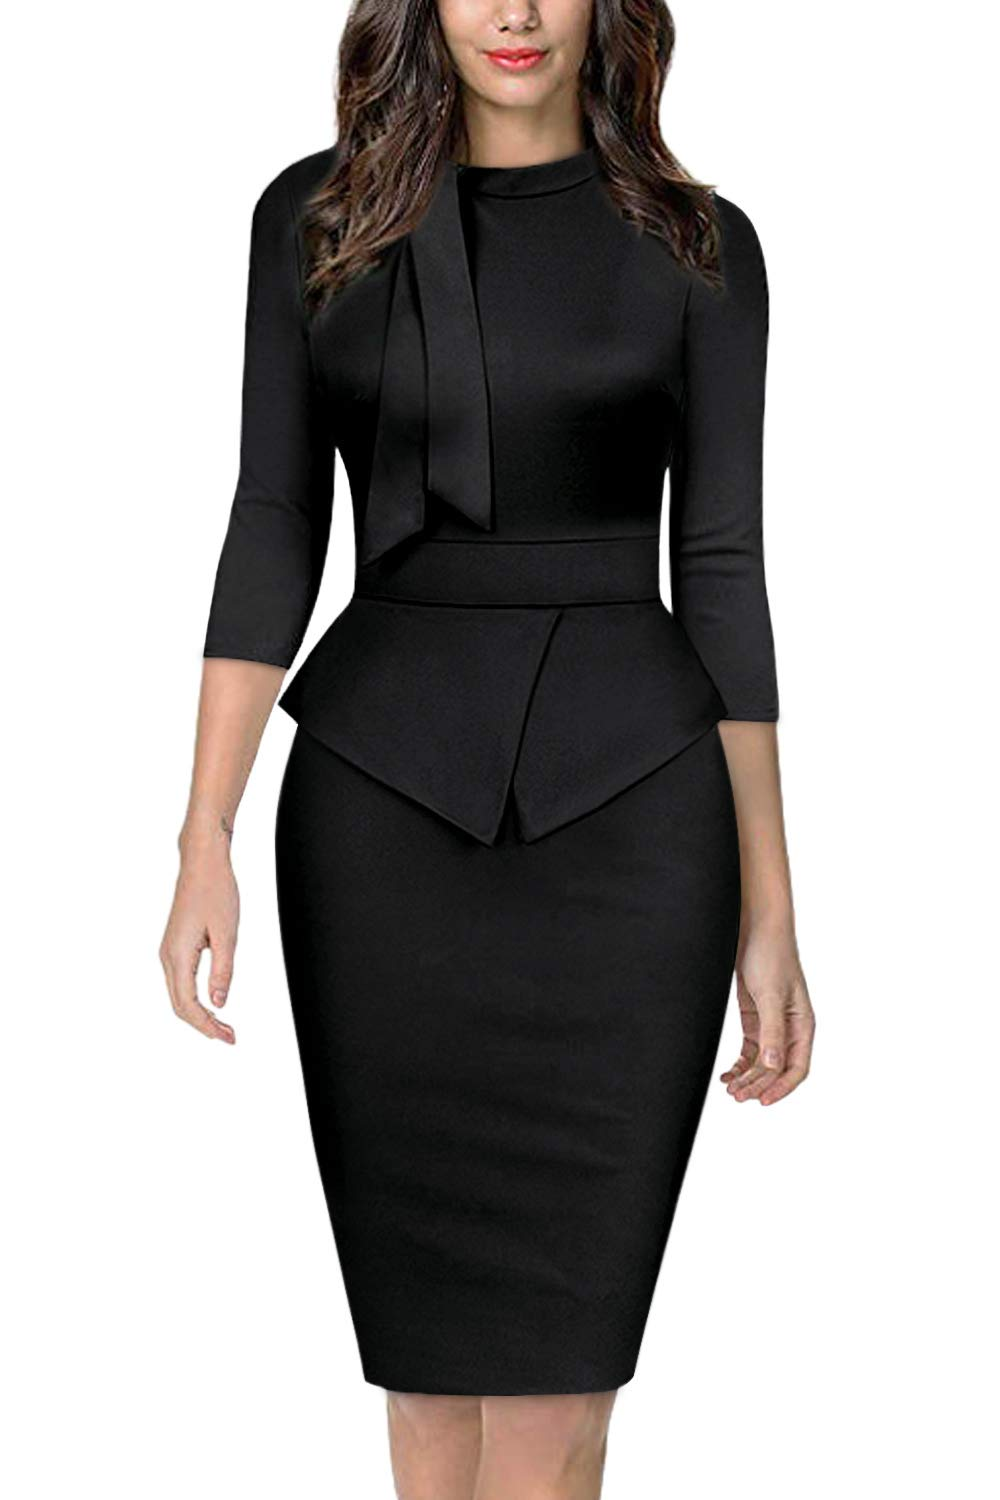 Moyabo Women's Tie Neck Vintage Bodycon Peplum Business Formal Work Pencil Dress